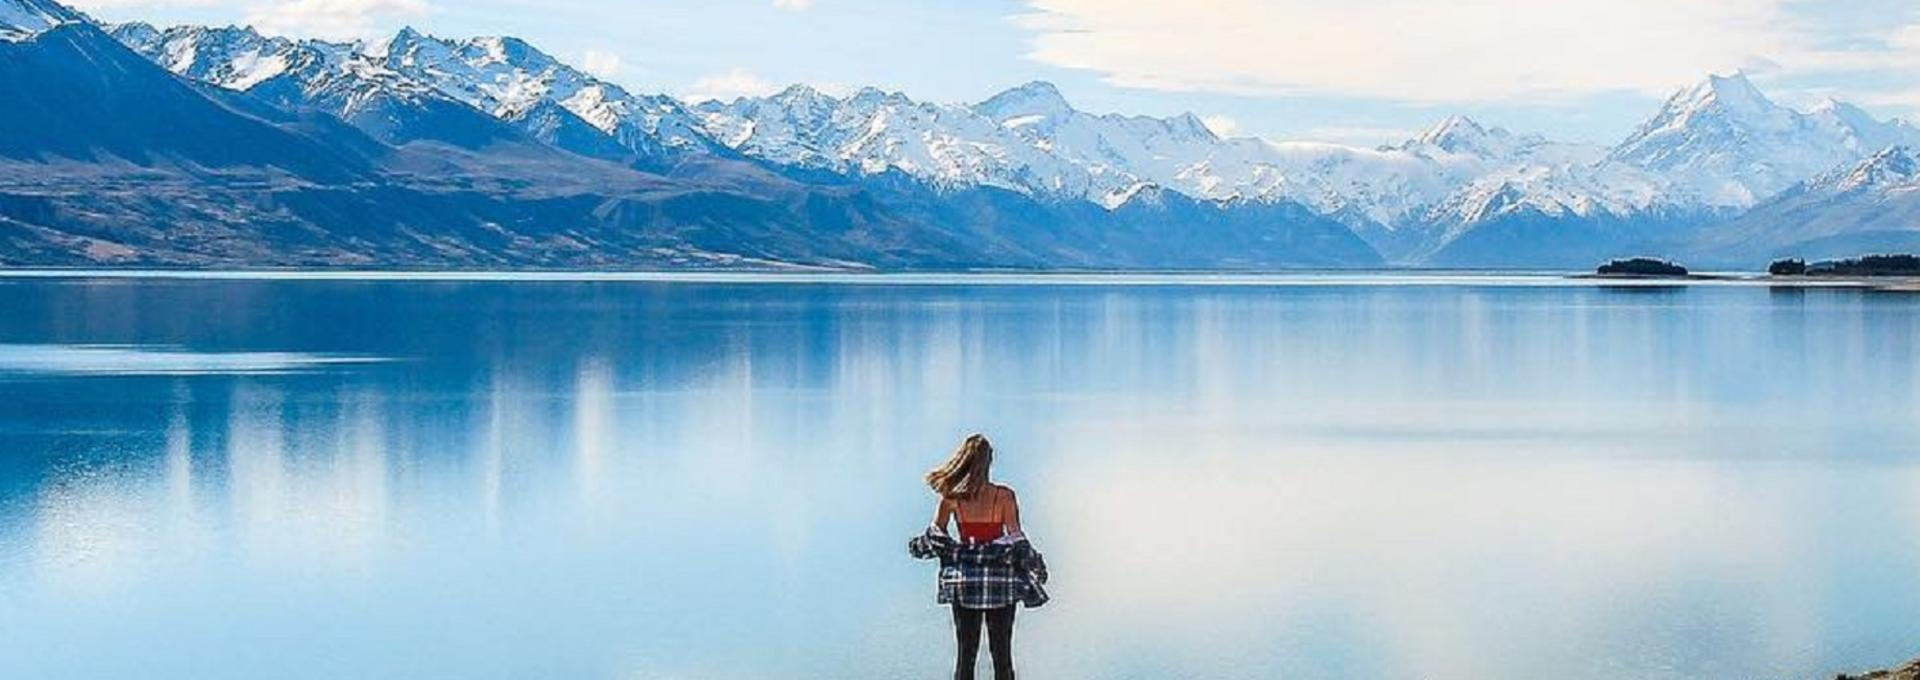 Woman looking out on New Zealand lake